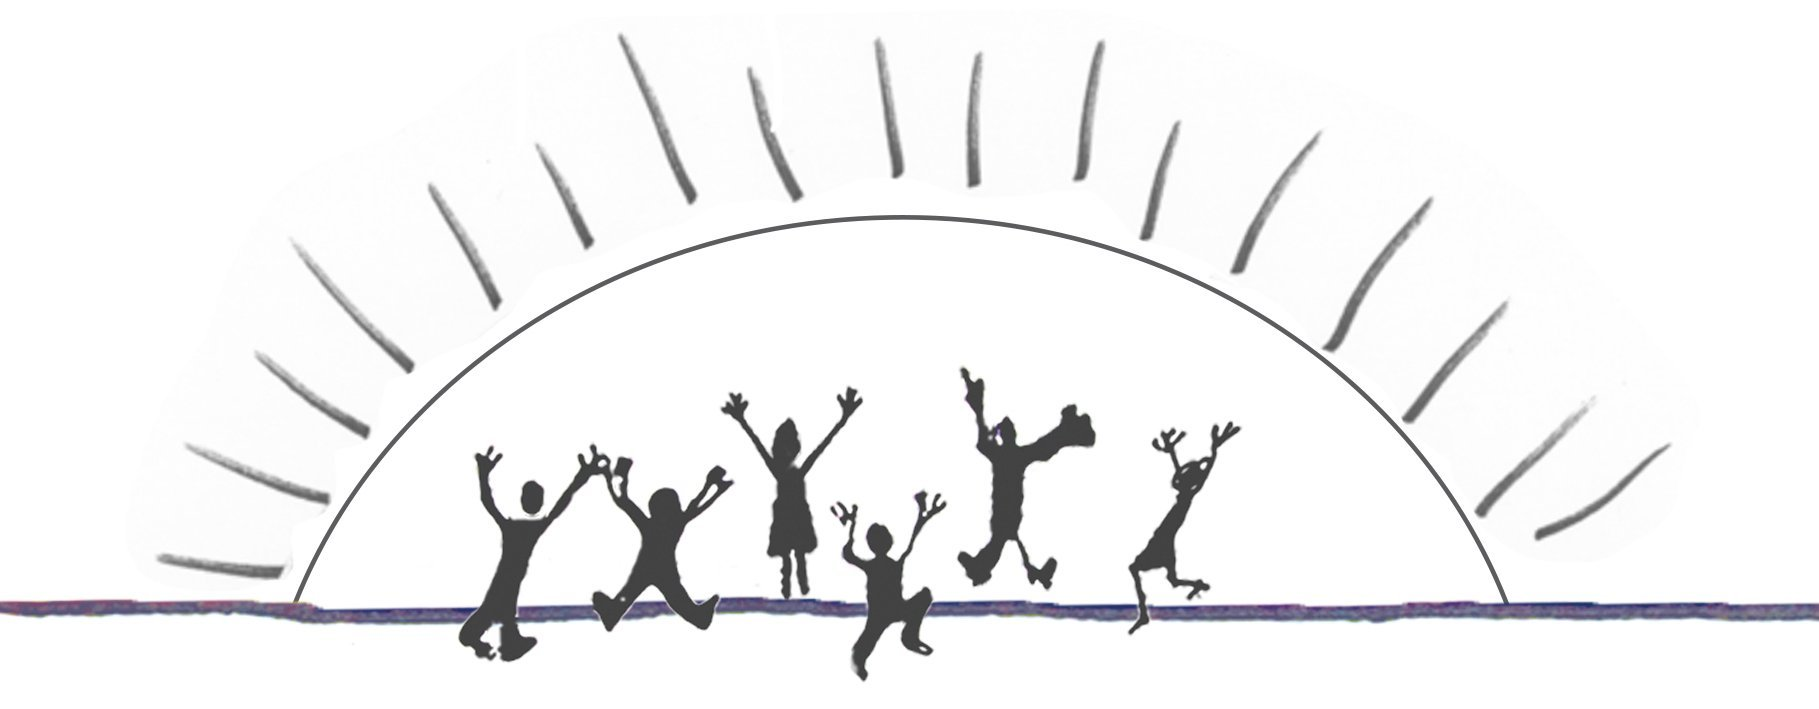 Drawing of people in front of a rising sun